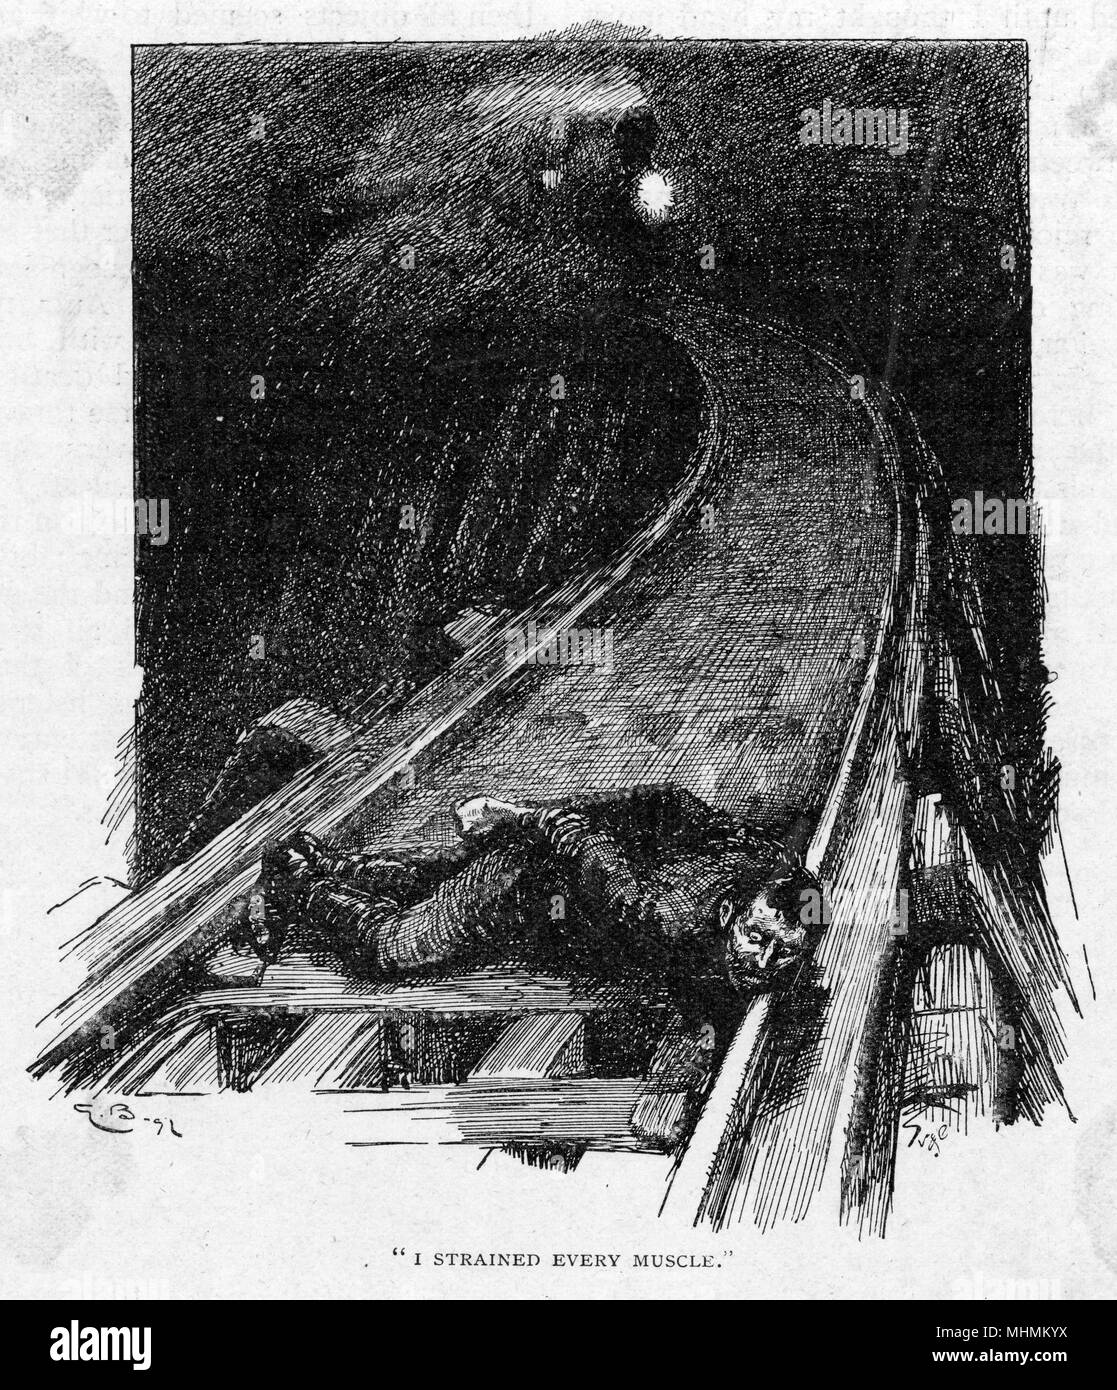 An unfortunate gentleman has been tied to the railroad tracks , with malicious intent. A train is rushing through the night towards him - will he escape or not ?     Date: 1896 - Stock Image